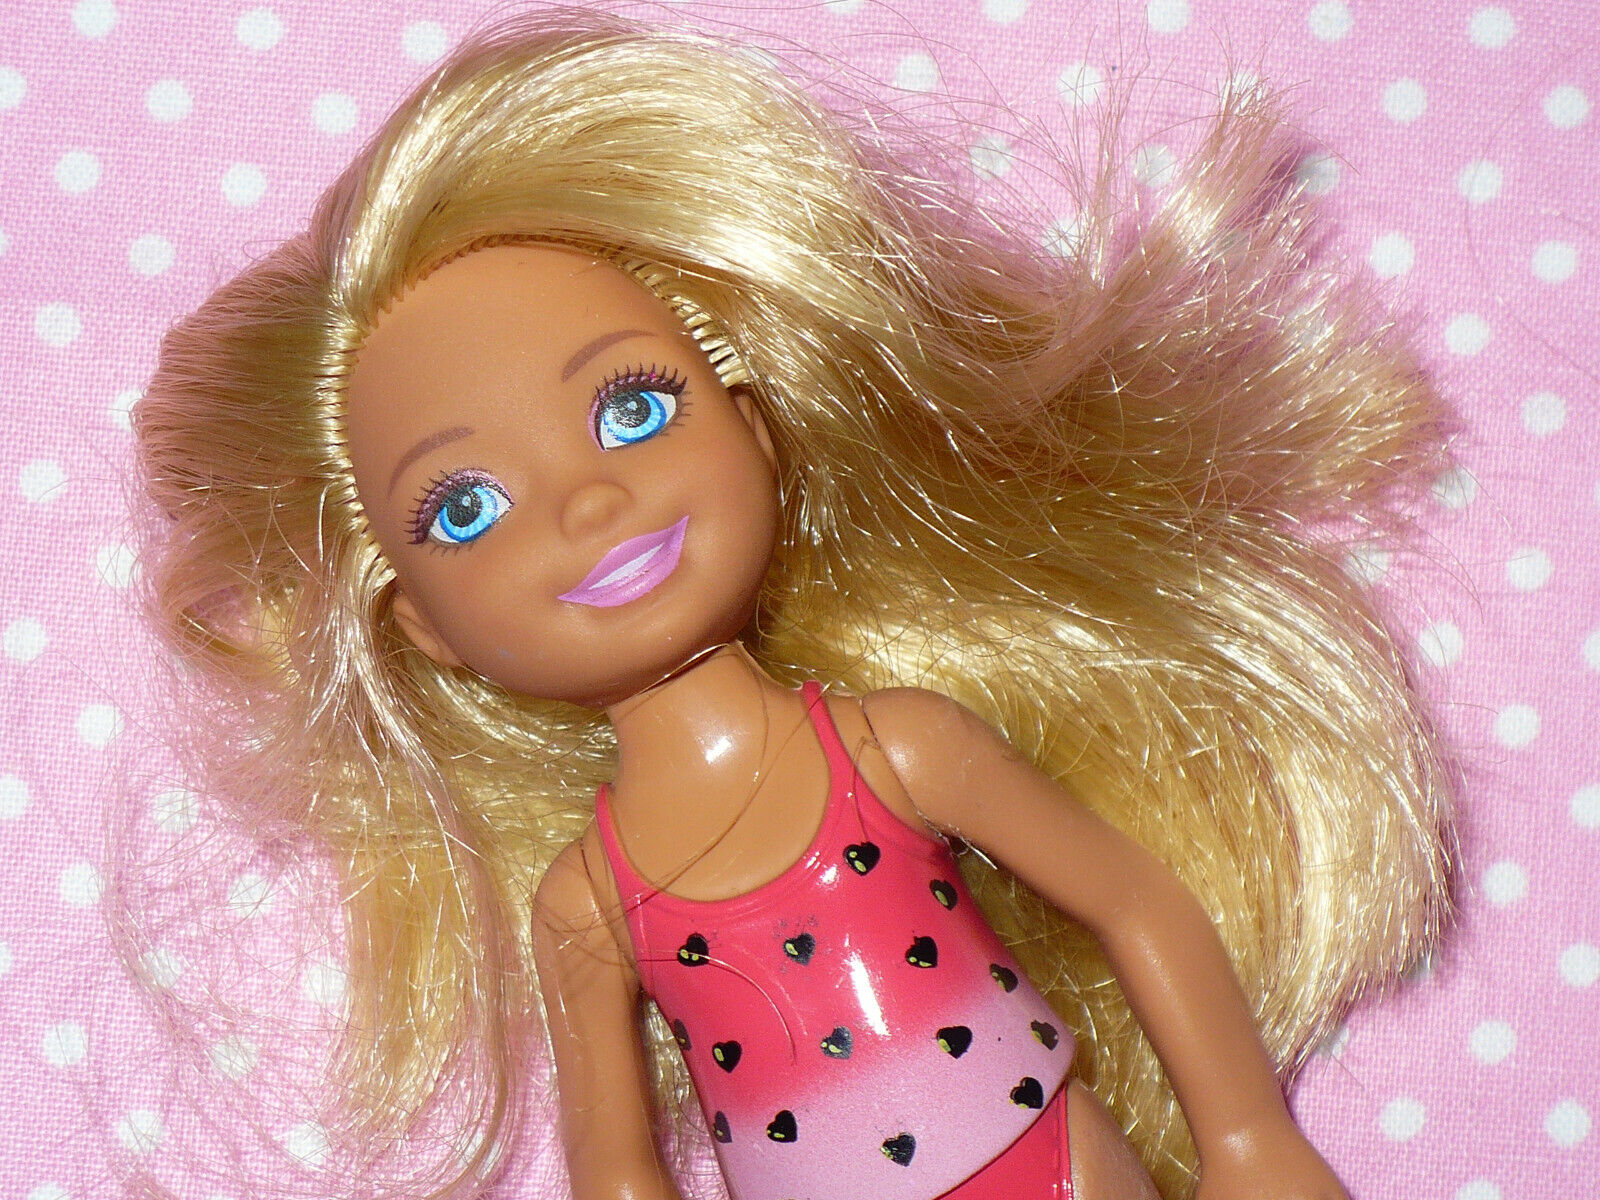 Mattel Barbie KELLY TOMMY CHELSEA Doll PINK PERMANENT CLOTHING Blue Eyes  - $7.99